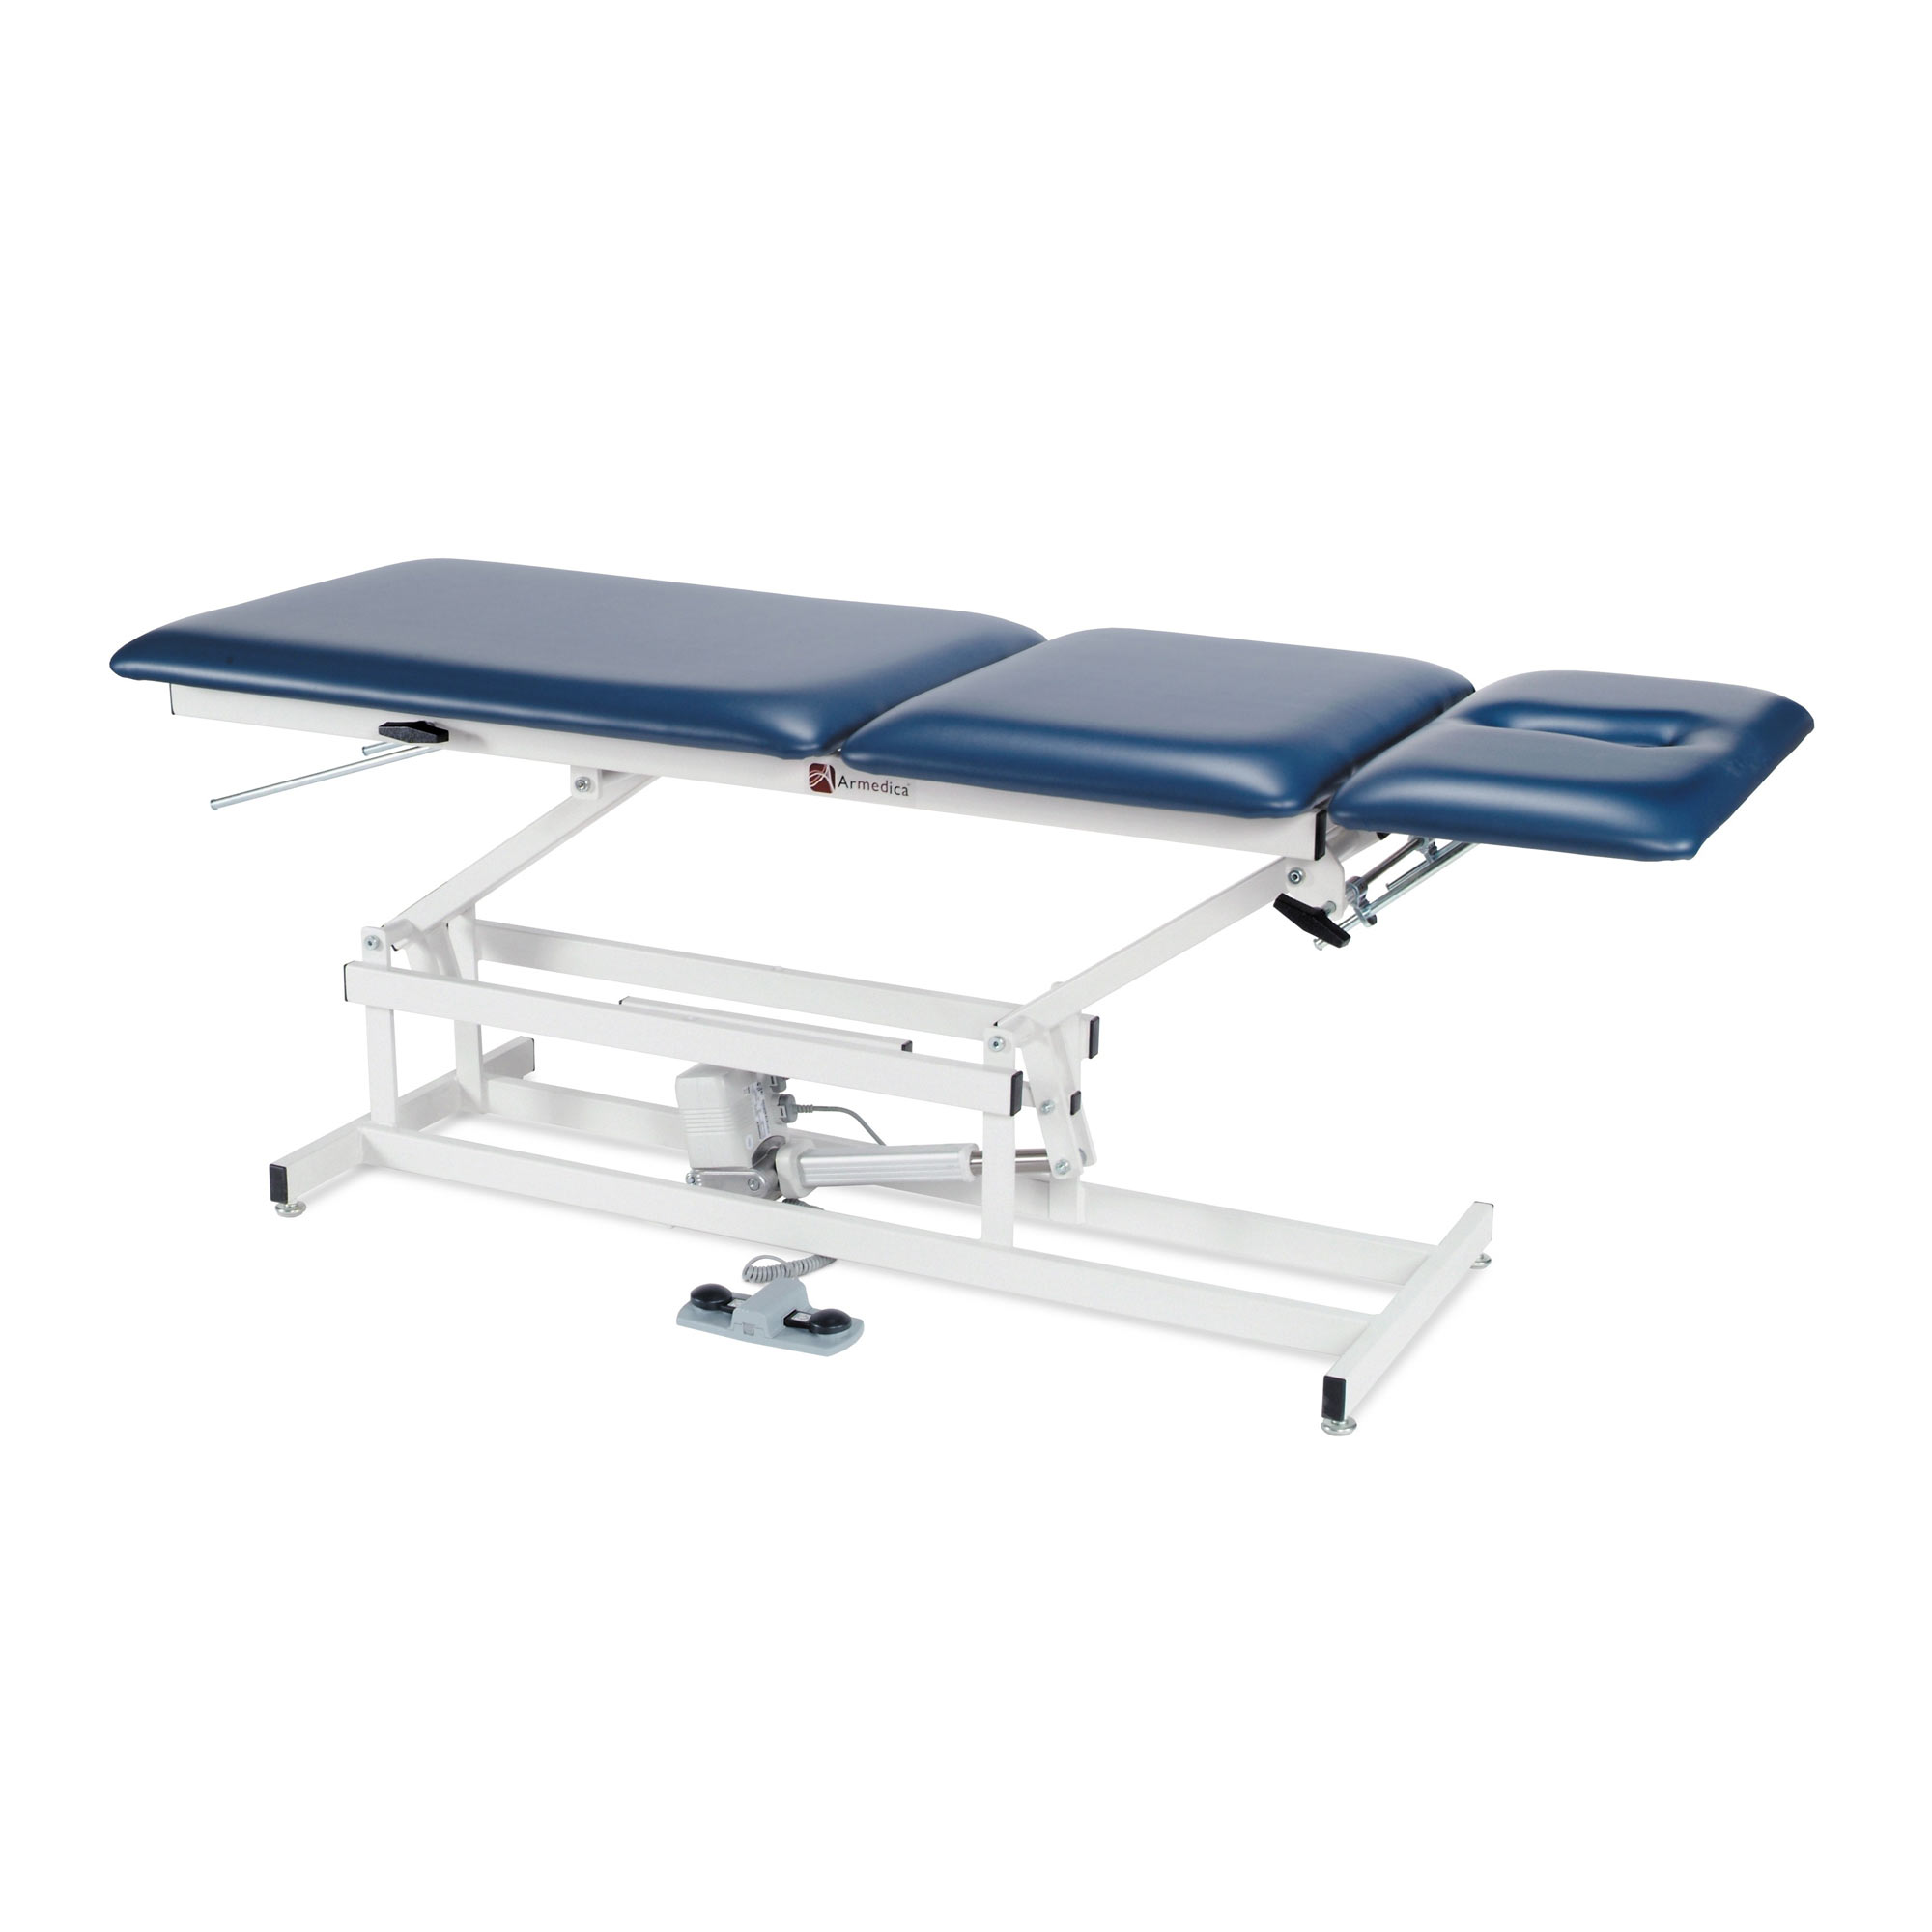 Armedica AM-334 bariatric treatment table